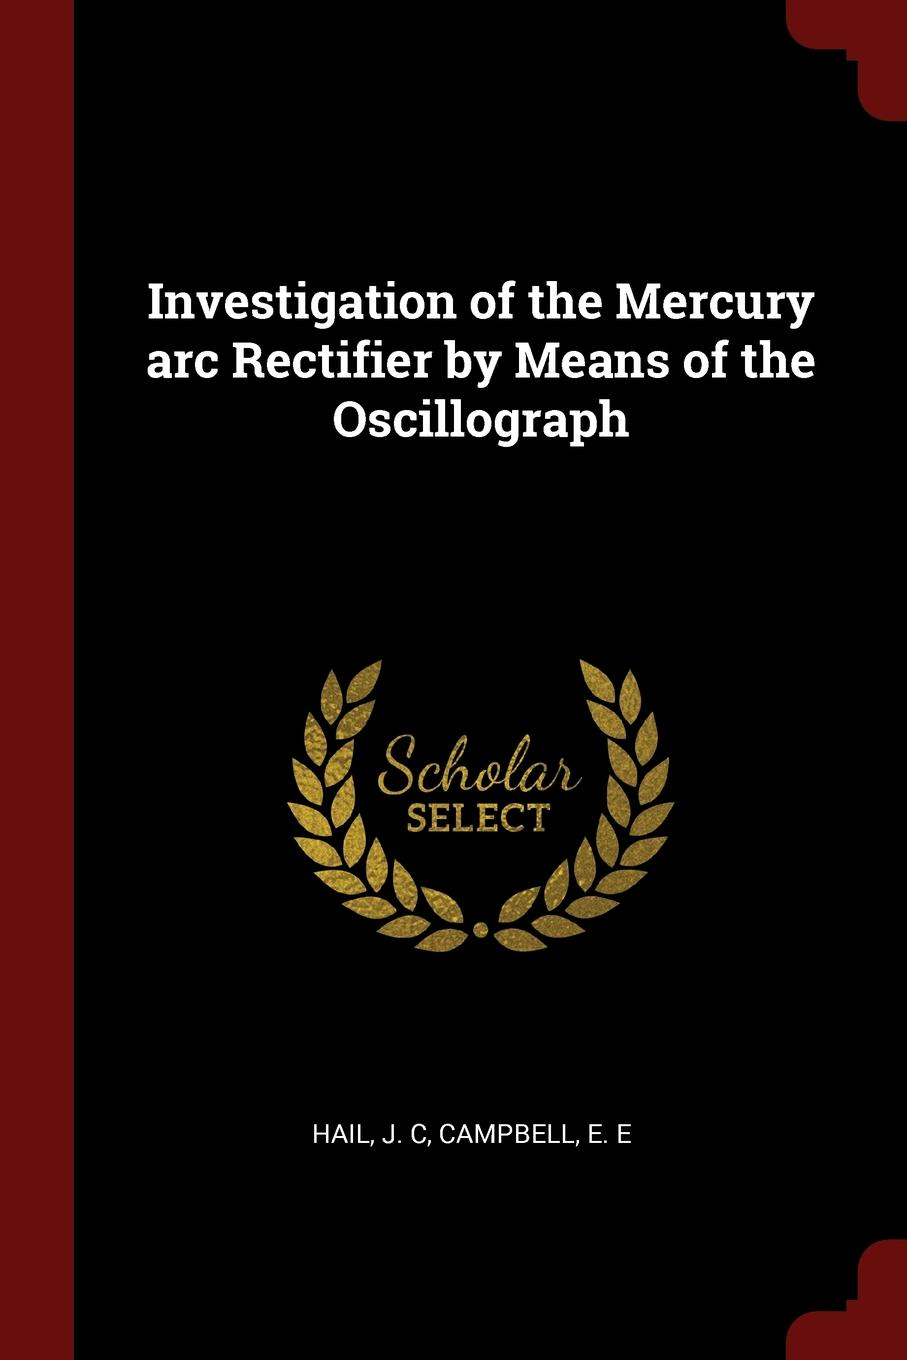 Investigation of the Mercury arc Rectifier by Means of the Oscillograph